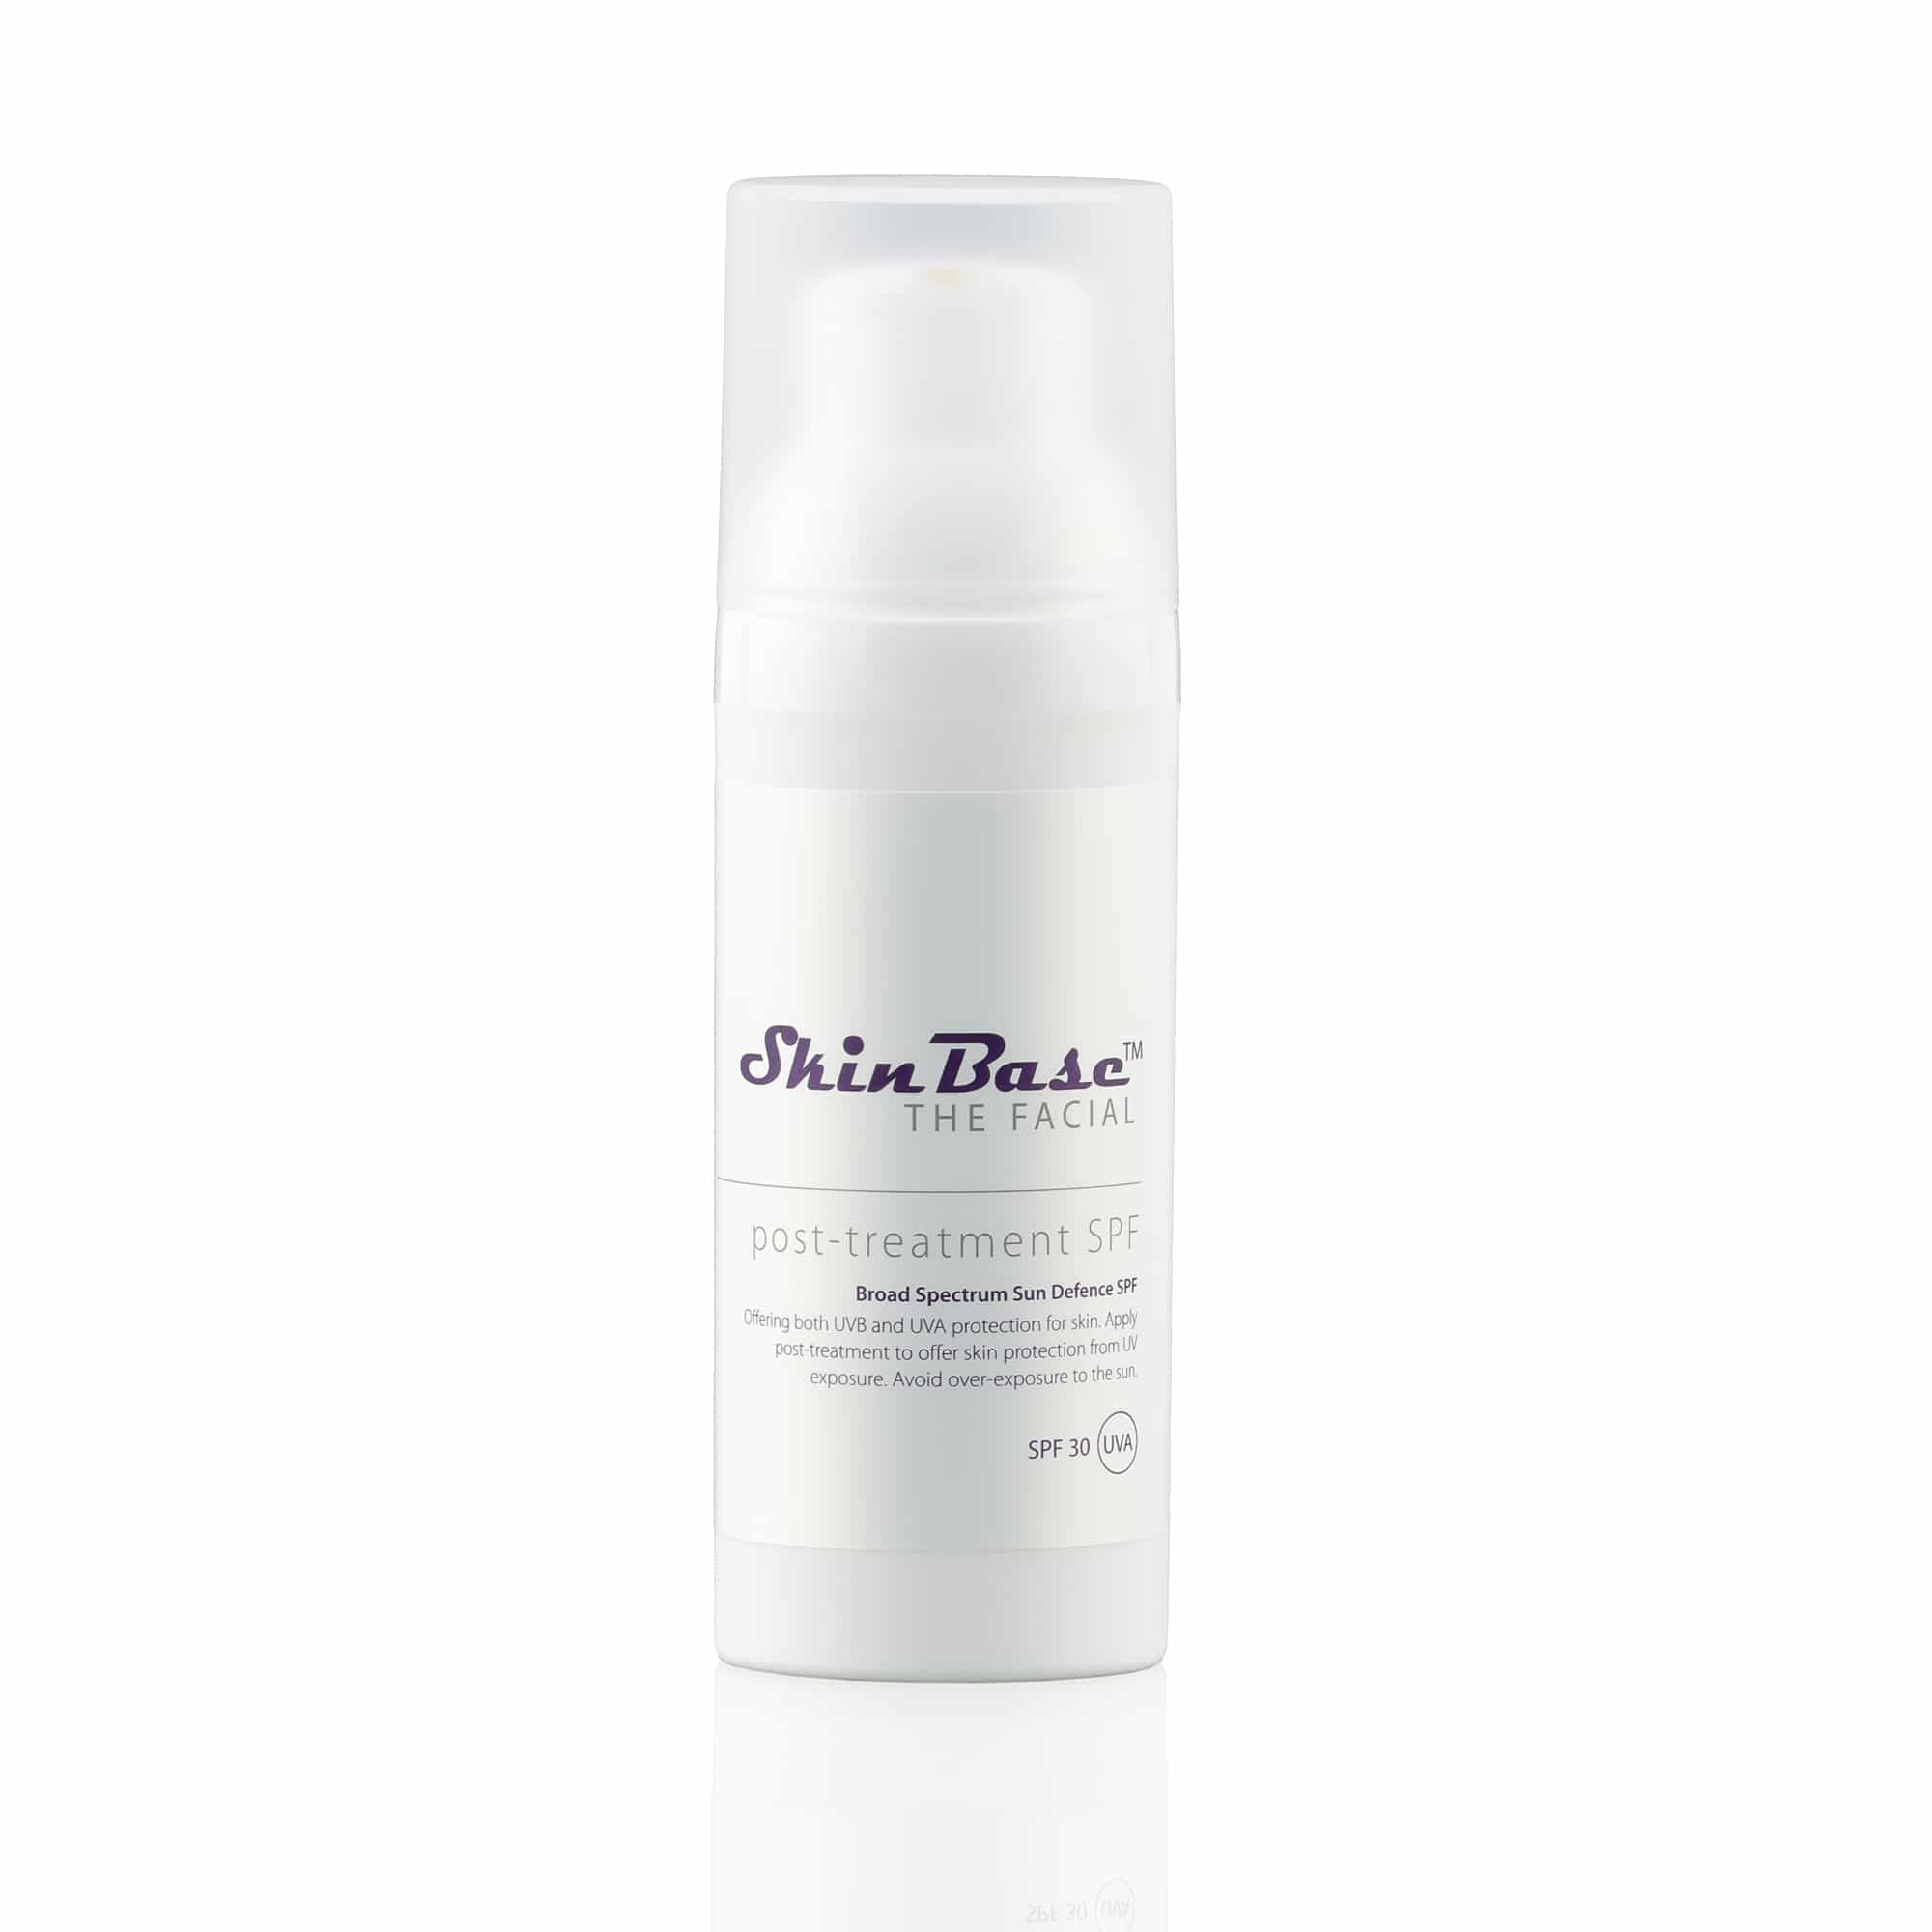 SkinBase Post Treatment SPF